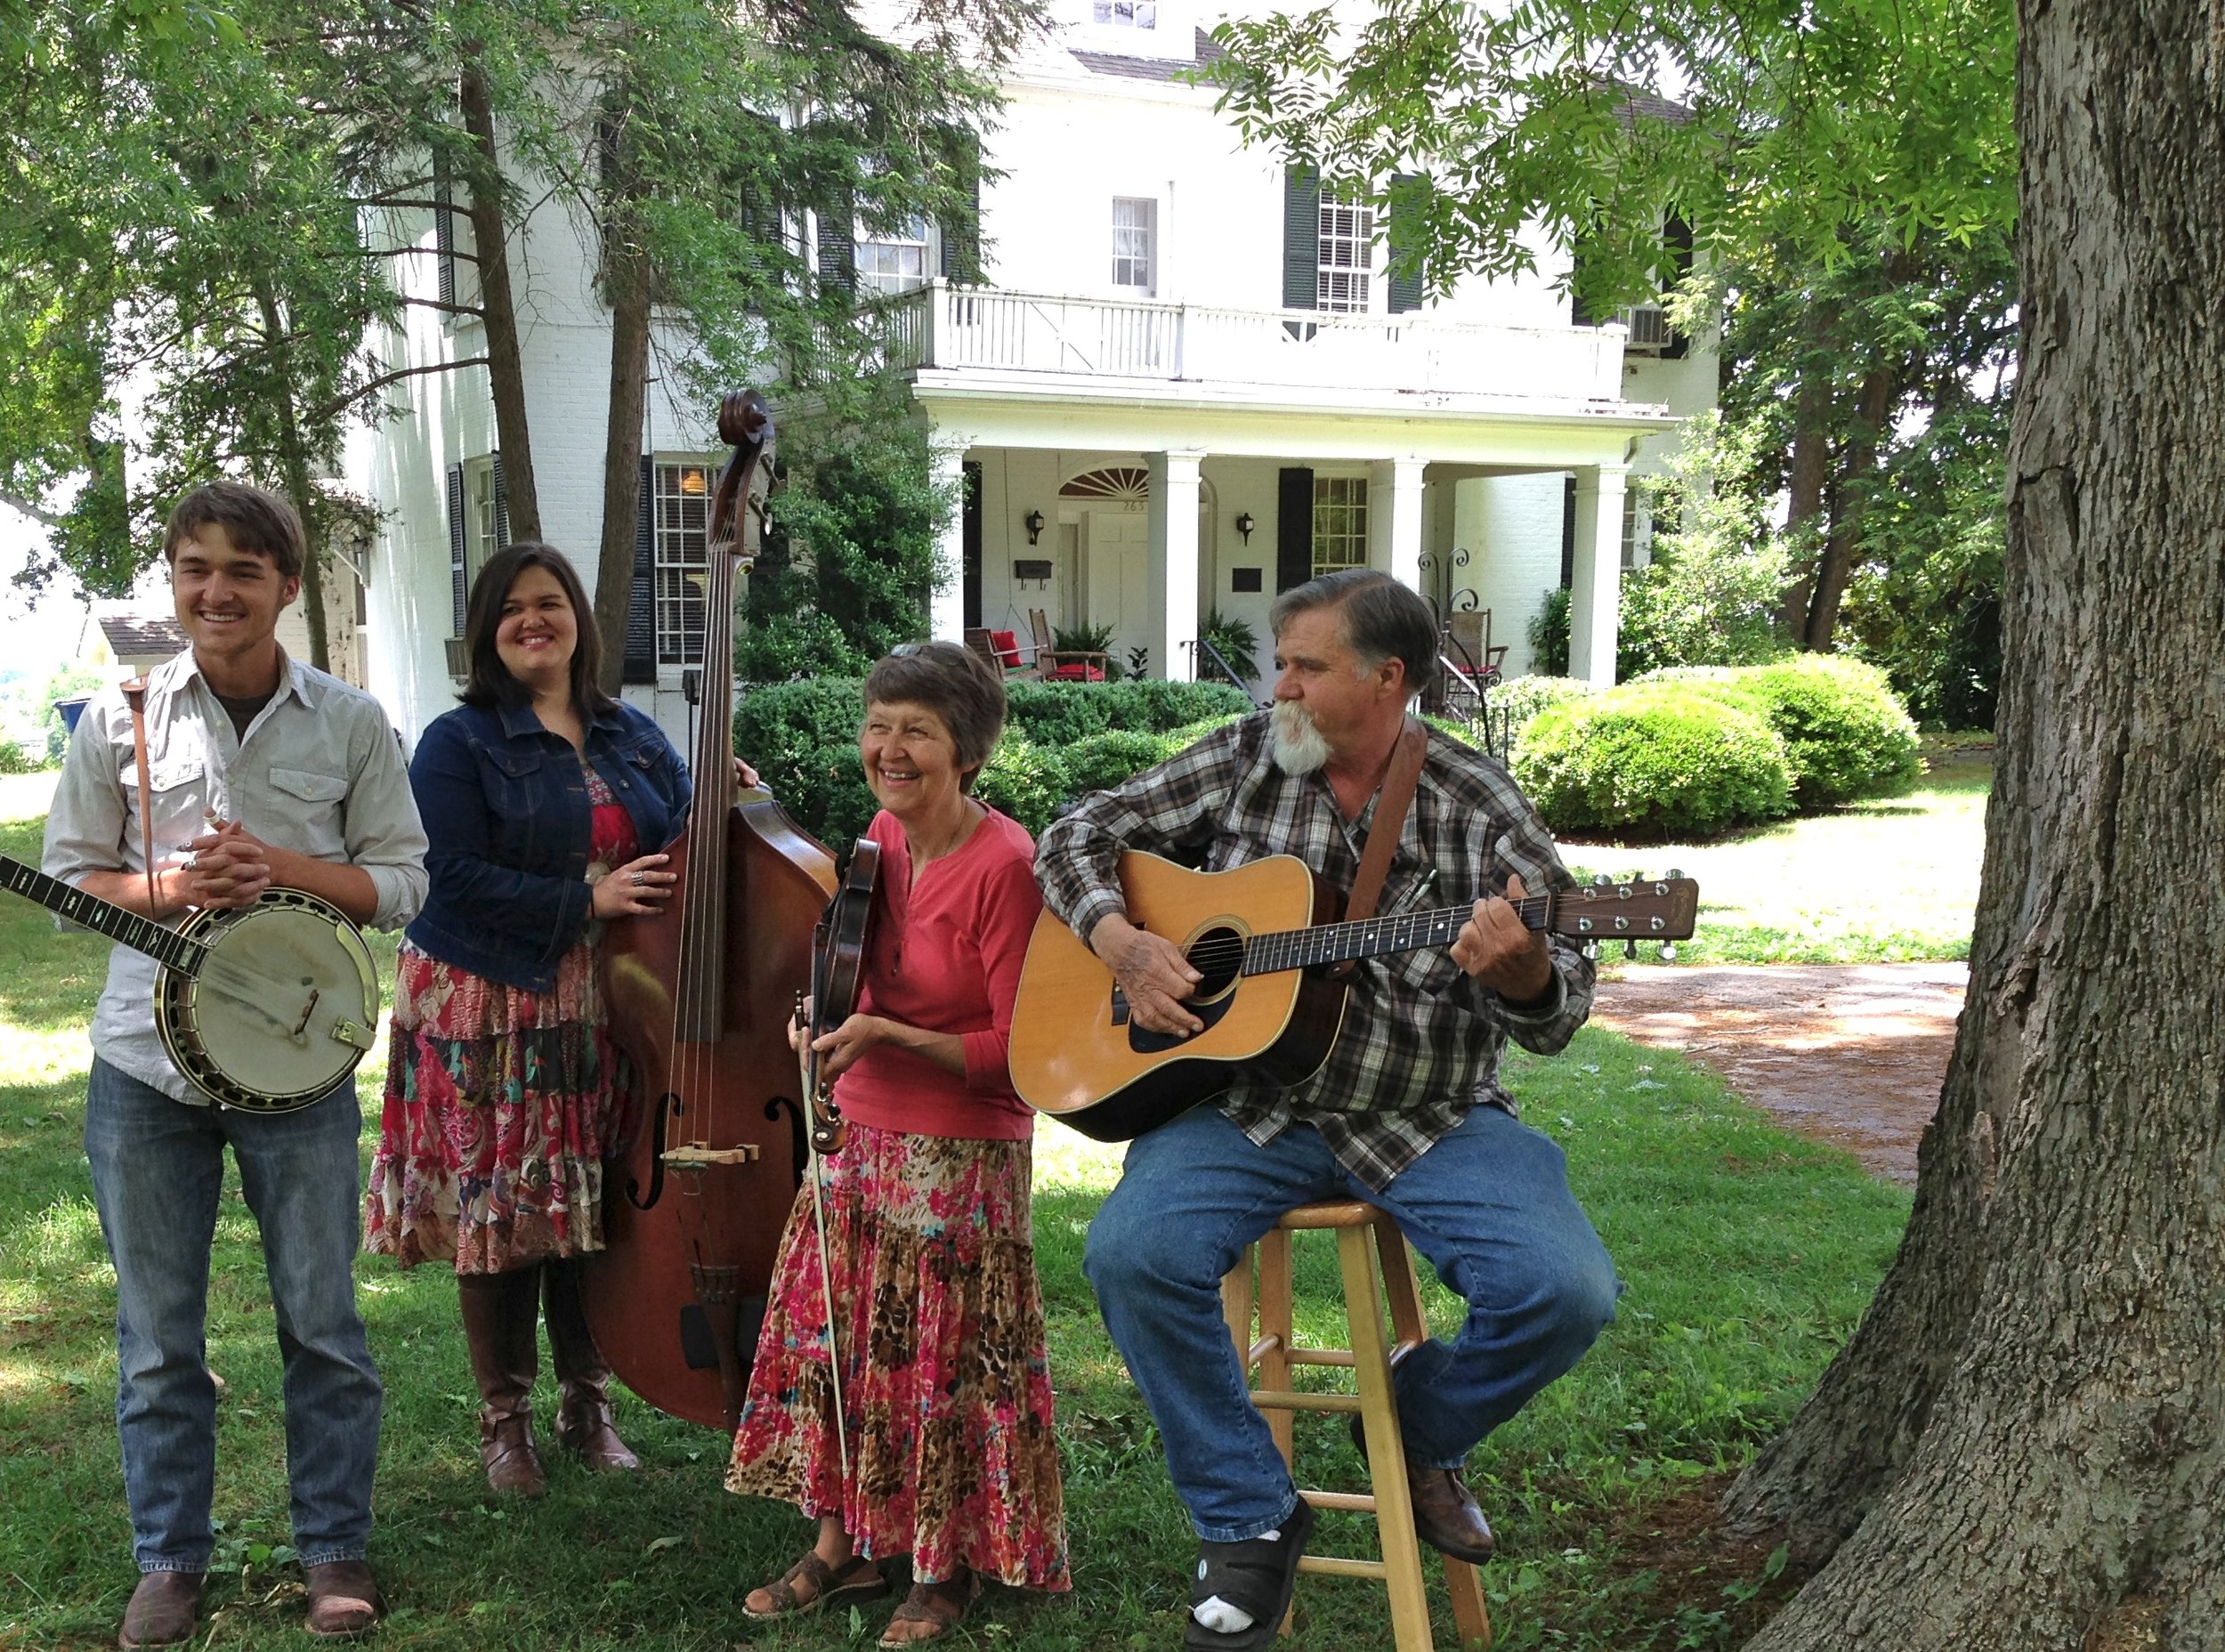 The Holt Family—Daniel Ray, sister Melody, and parents Martha Lynn and Danny Ray Holt, performed on the broad, shady lawn of Savannah's antebellum Cherry Mansion overlooking the Tennessee River.